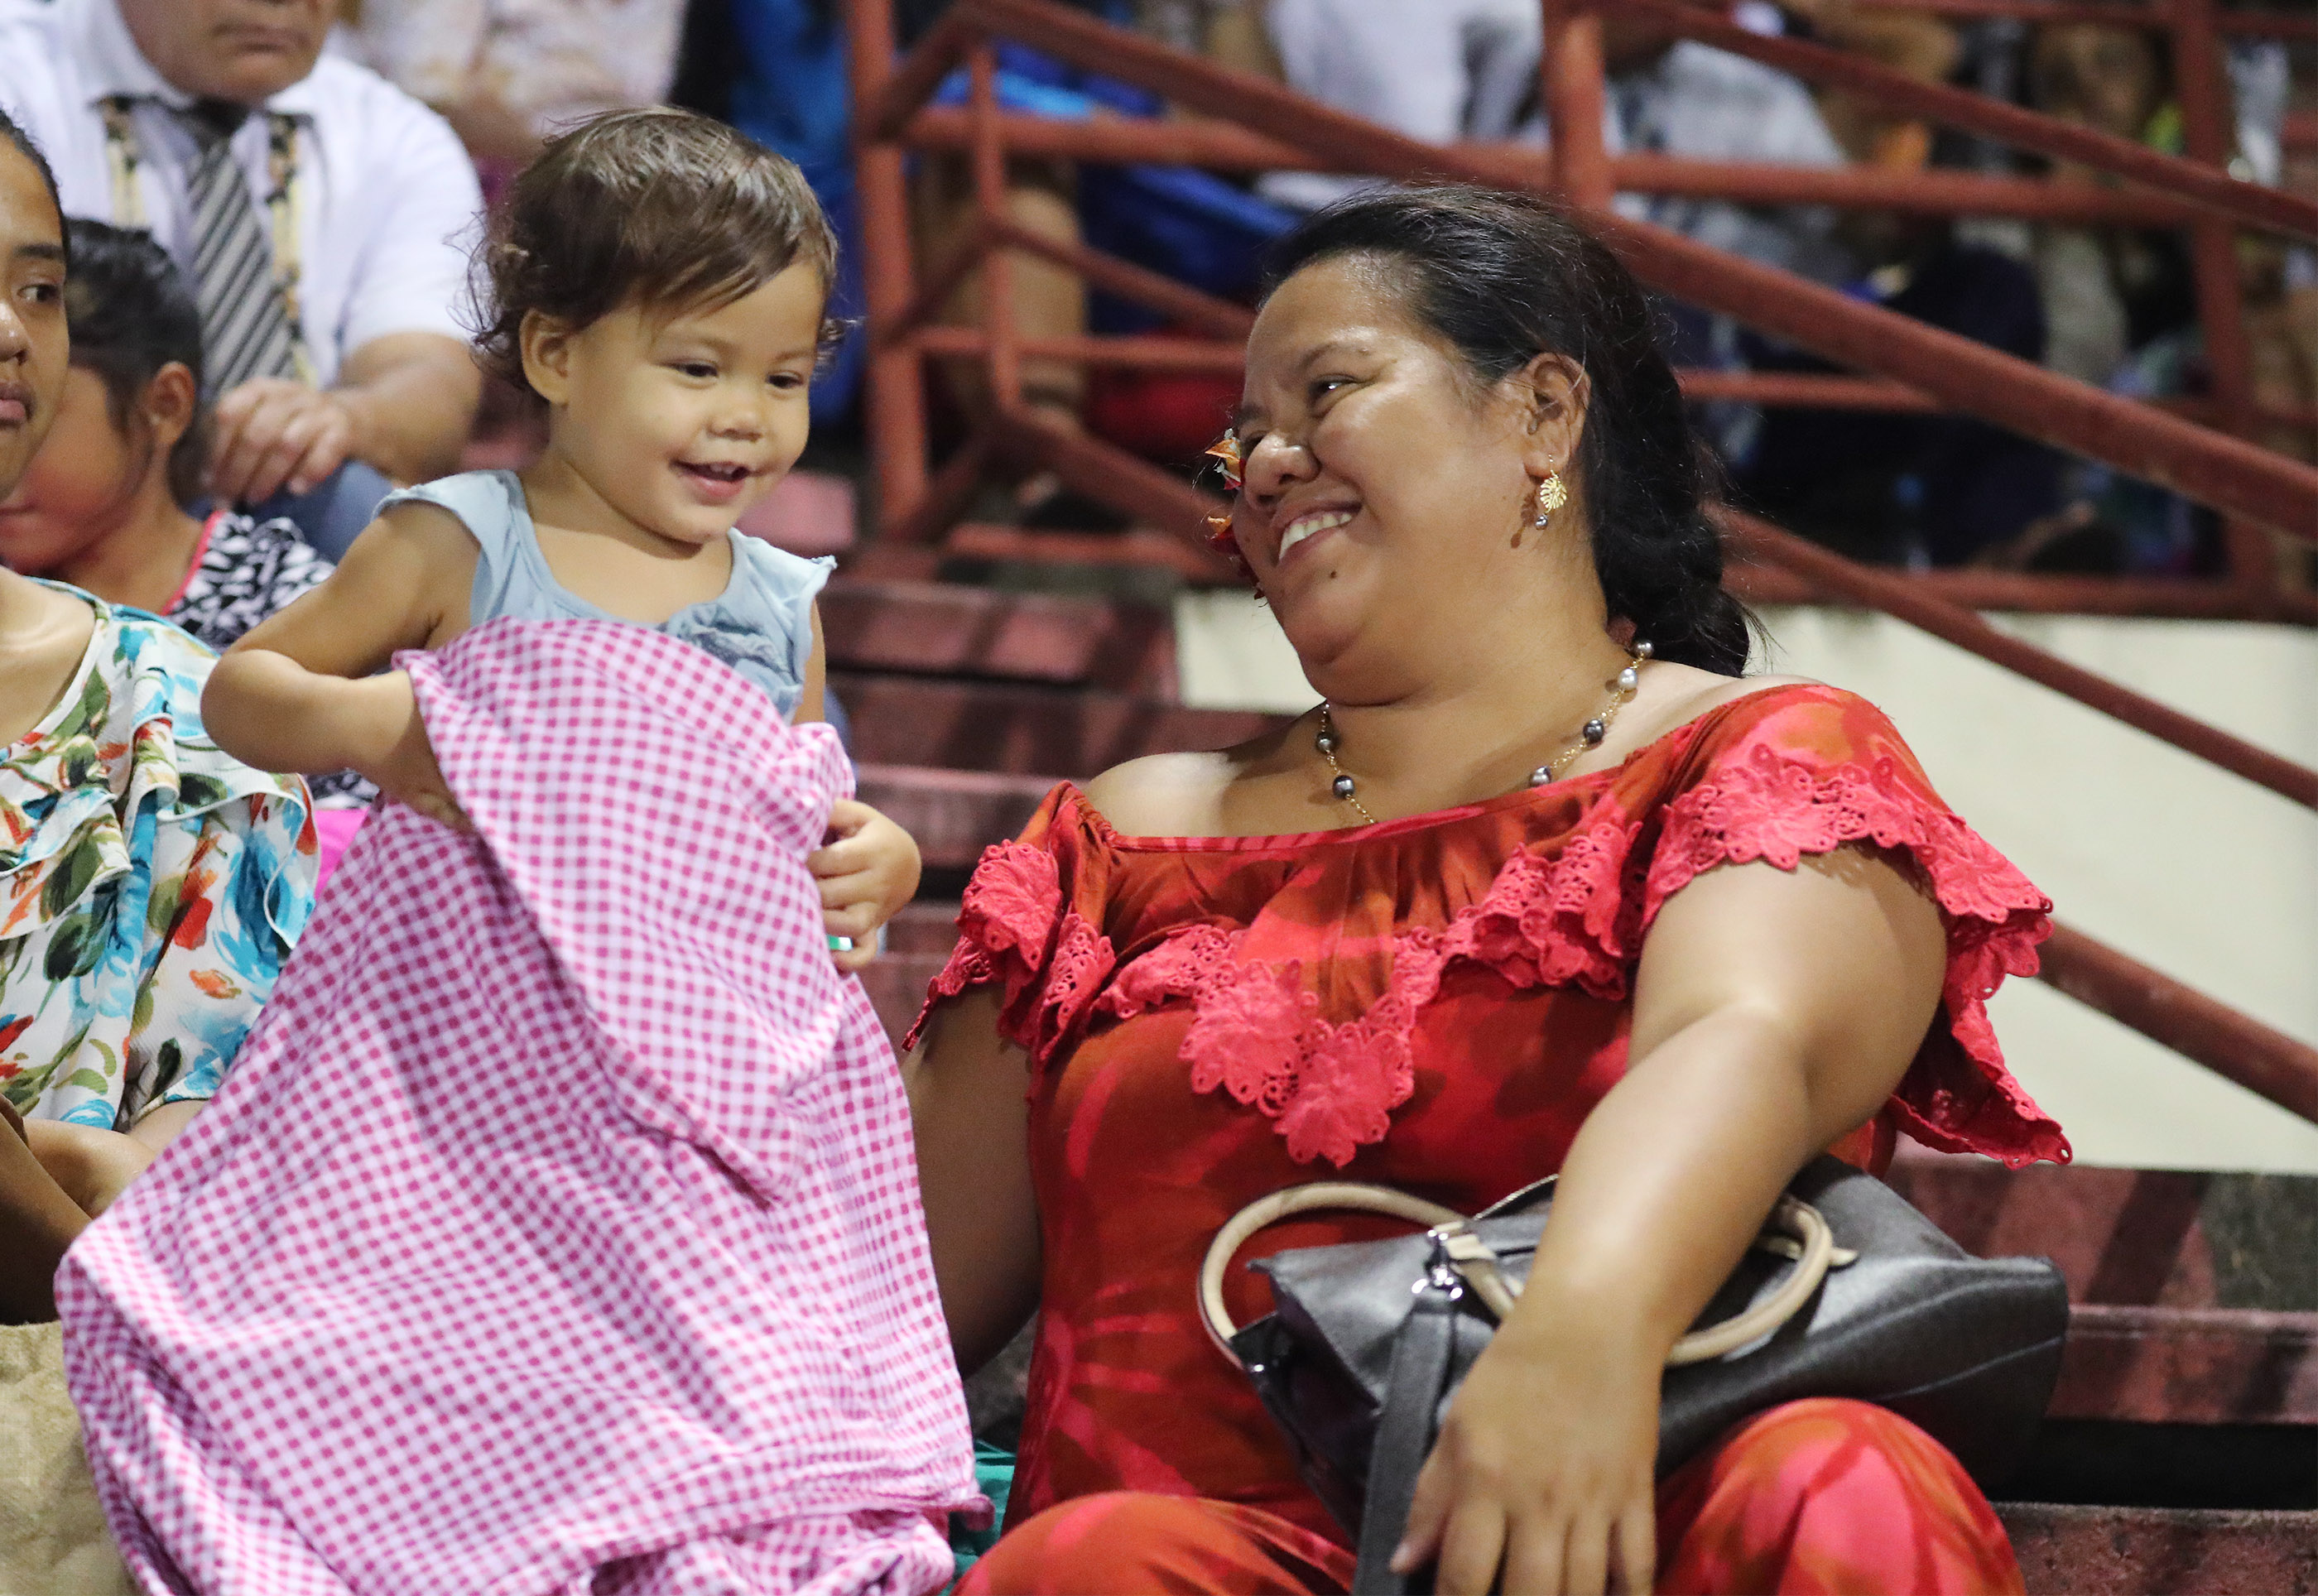 An attendee plays with her child during a devotional in Papeete, Tahiti, on May 24, 2019.